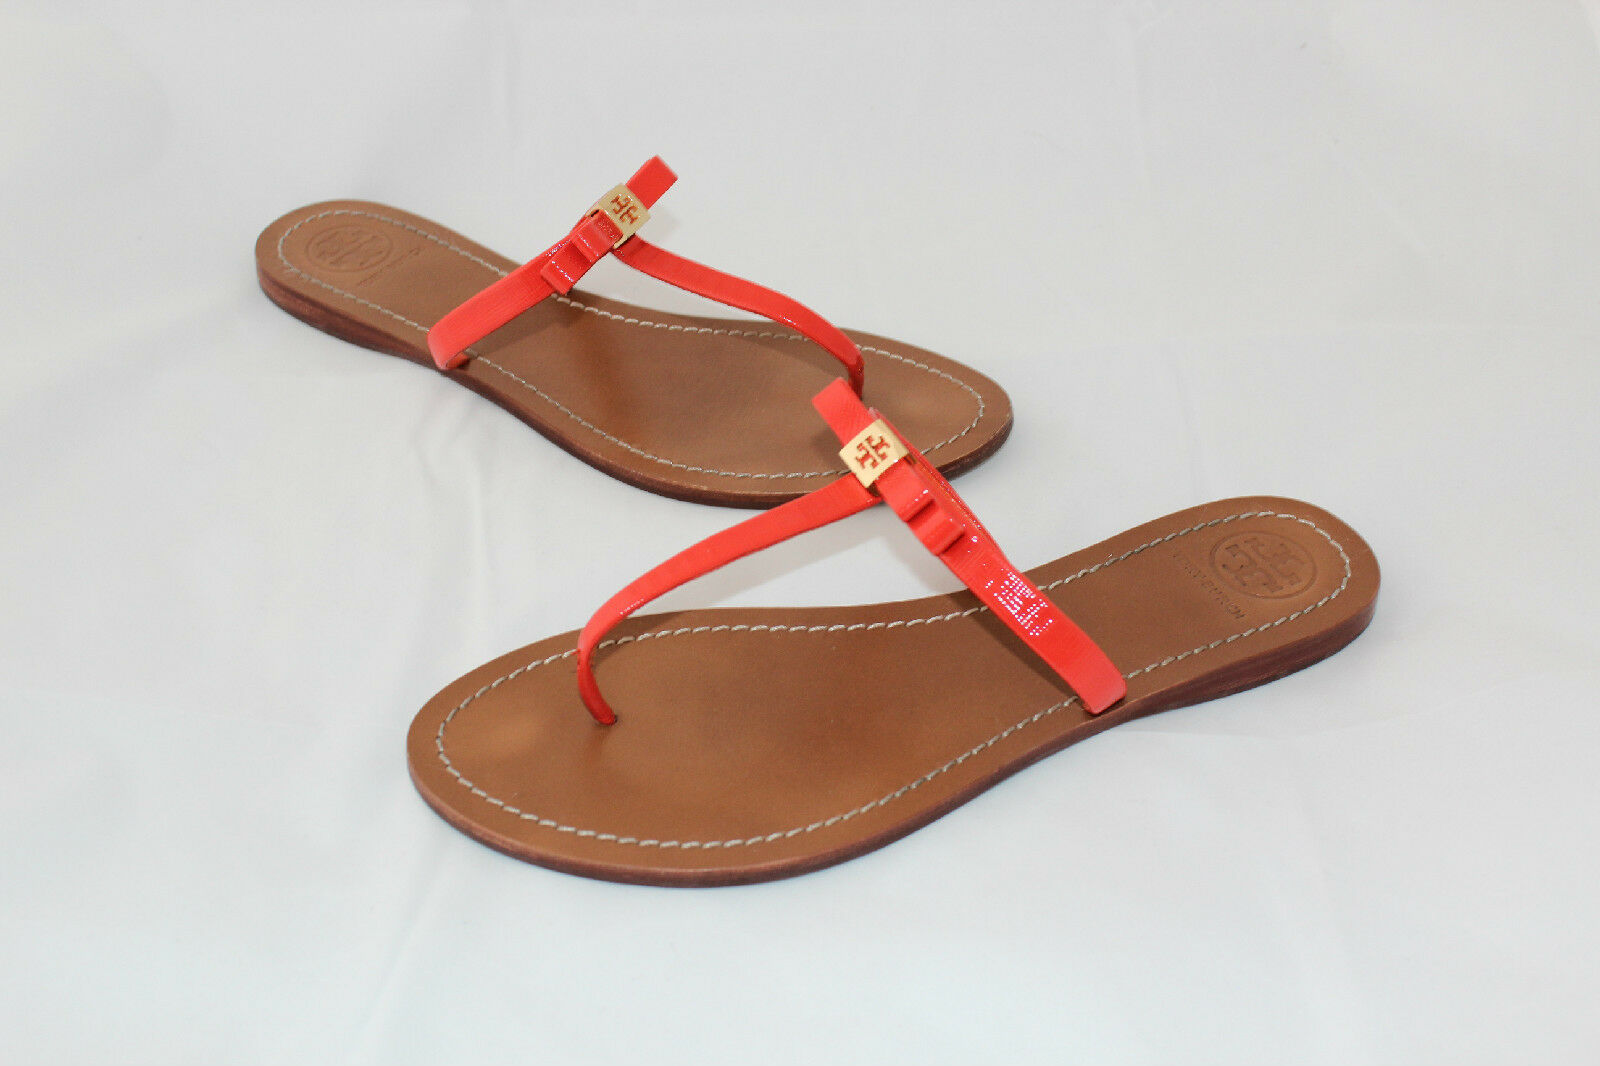 TORY BURCH Leighanne Thong Sandal Patent Leather 10 Orange Flip Flops Flats (P1)